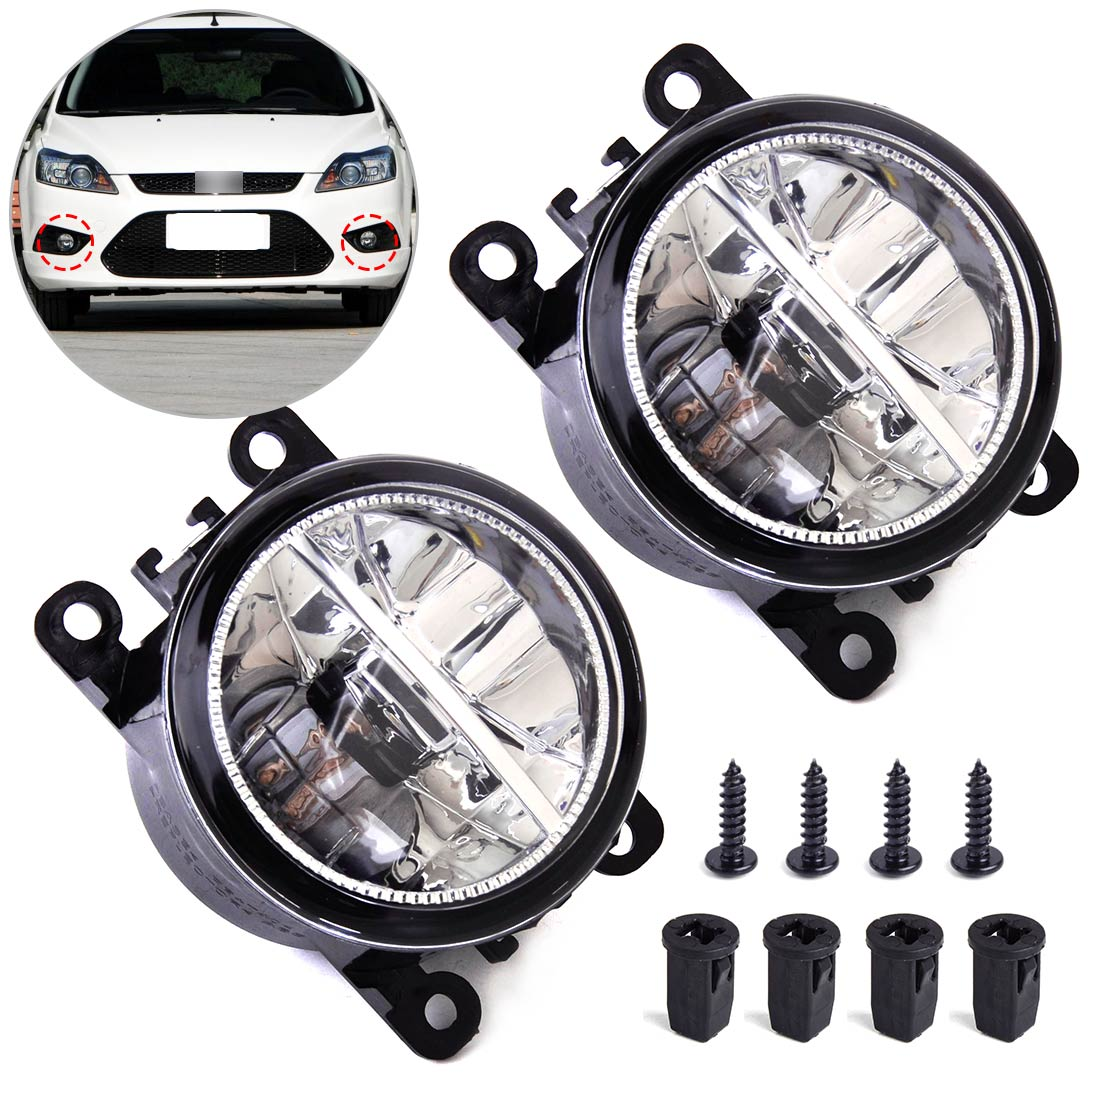 DWCX 2x Right Left LED Fog Light Lamp AC2592111 4F9Z15200AA 33900STKA11 for Ford Focus Honda Acura Lincoln Nissan Subaru Suzuki beler fog light lamp h11 female adapter wiring harness sockets wire connector for ford focus fiesta acura nissan honda subaru